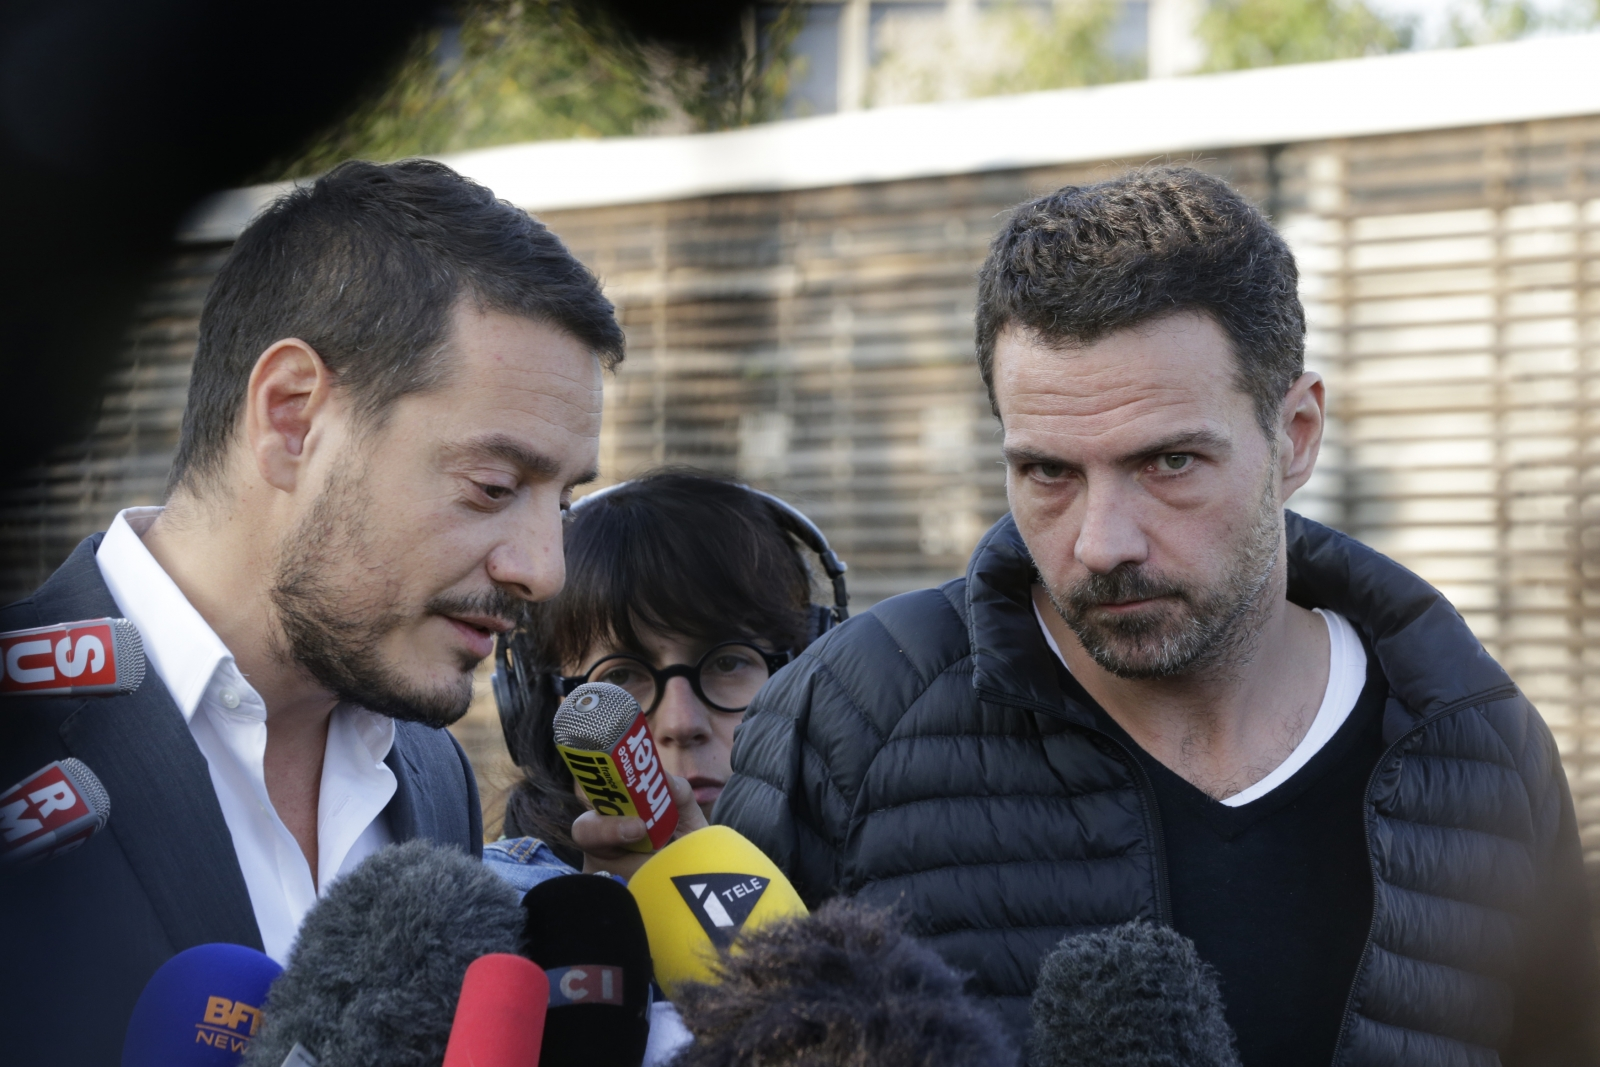 Former French trader Jerome Kerviel (R) and his lawyer David Koubbi speak to the media outside the Fleury-Merogis prison near Paris September 8, 2014.